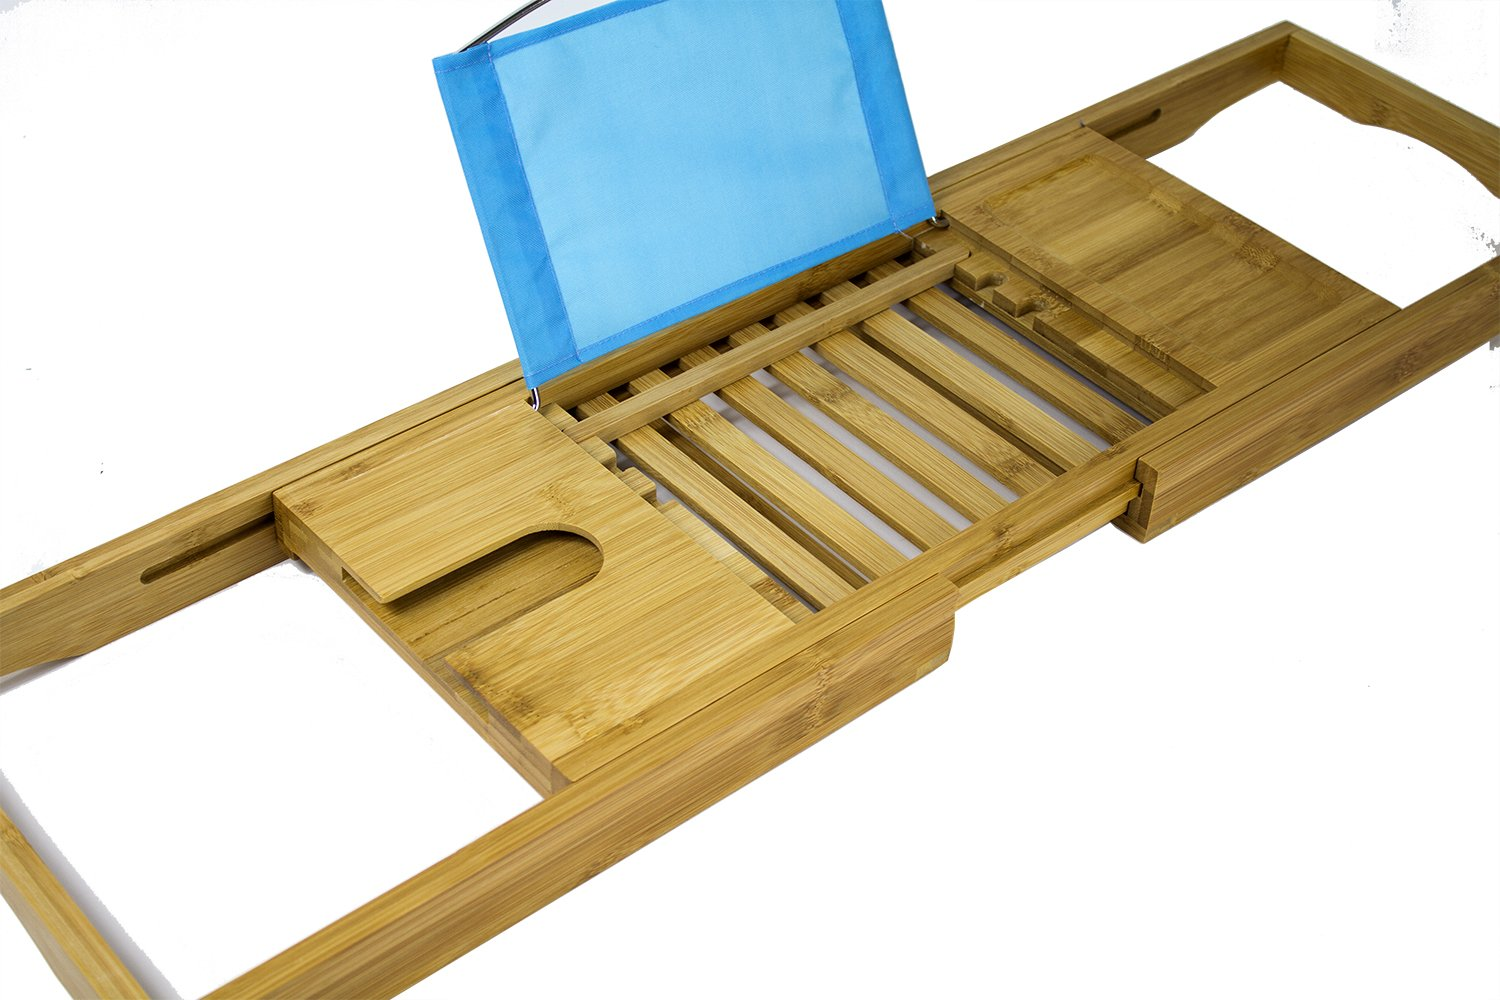 [Luxury] Bamboo Bathtub Caddy Tray with Expanding Sides, Premium Bath Tray, Tablet Holder, Wine Glass Holder, Eco Friendly Spay Tray for Bathtub Tray with Wine Holder for Bathtub by Misc Home (Image #6)